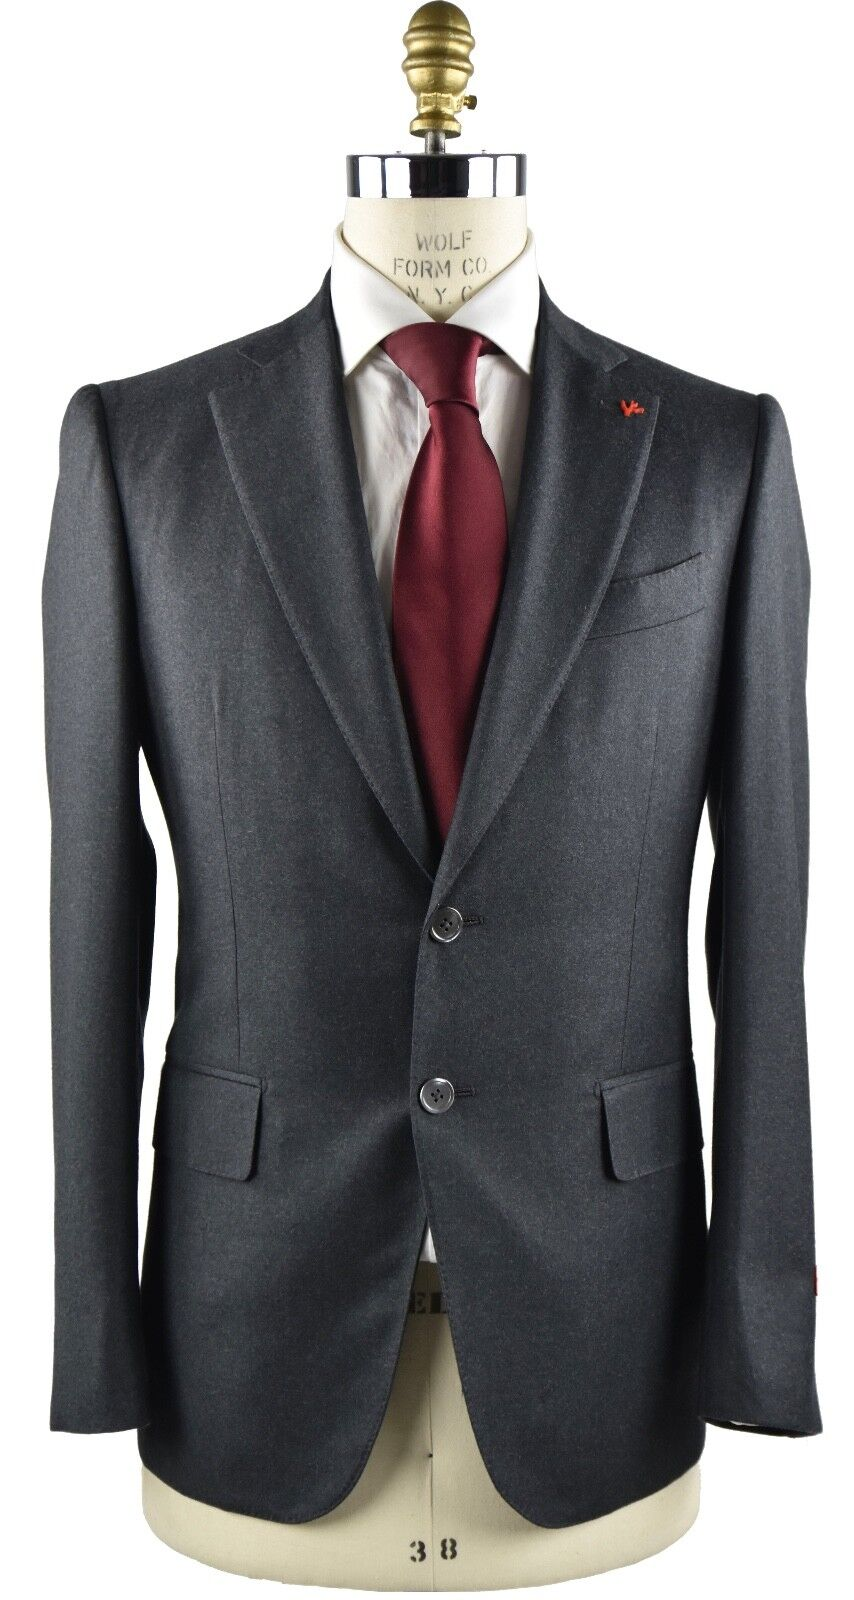 NEW 2018 ISAIA NAPOLI SUITS  100% WOOL 130'S SZ 40 US 50 EU 8R  18IVW4